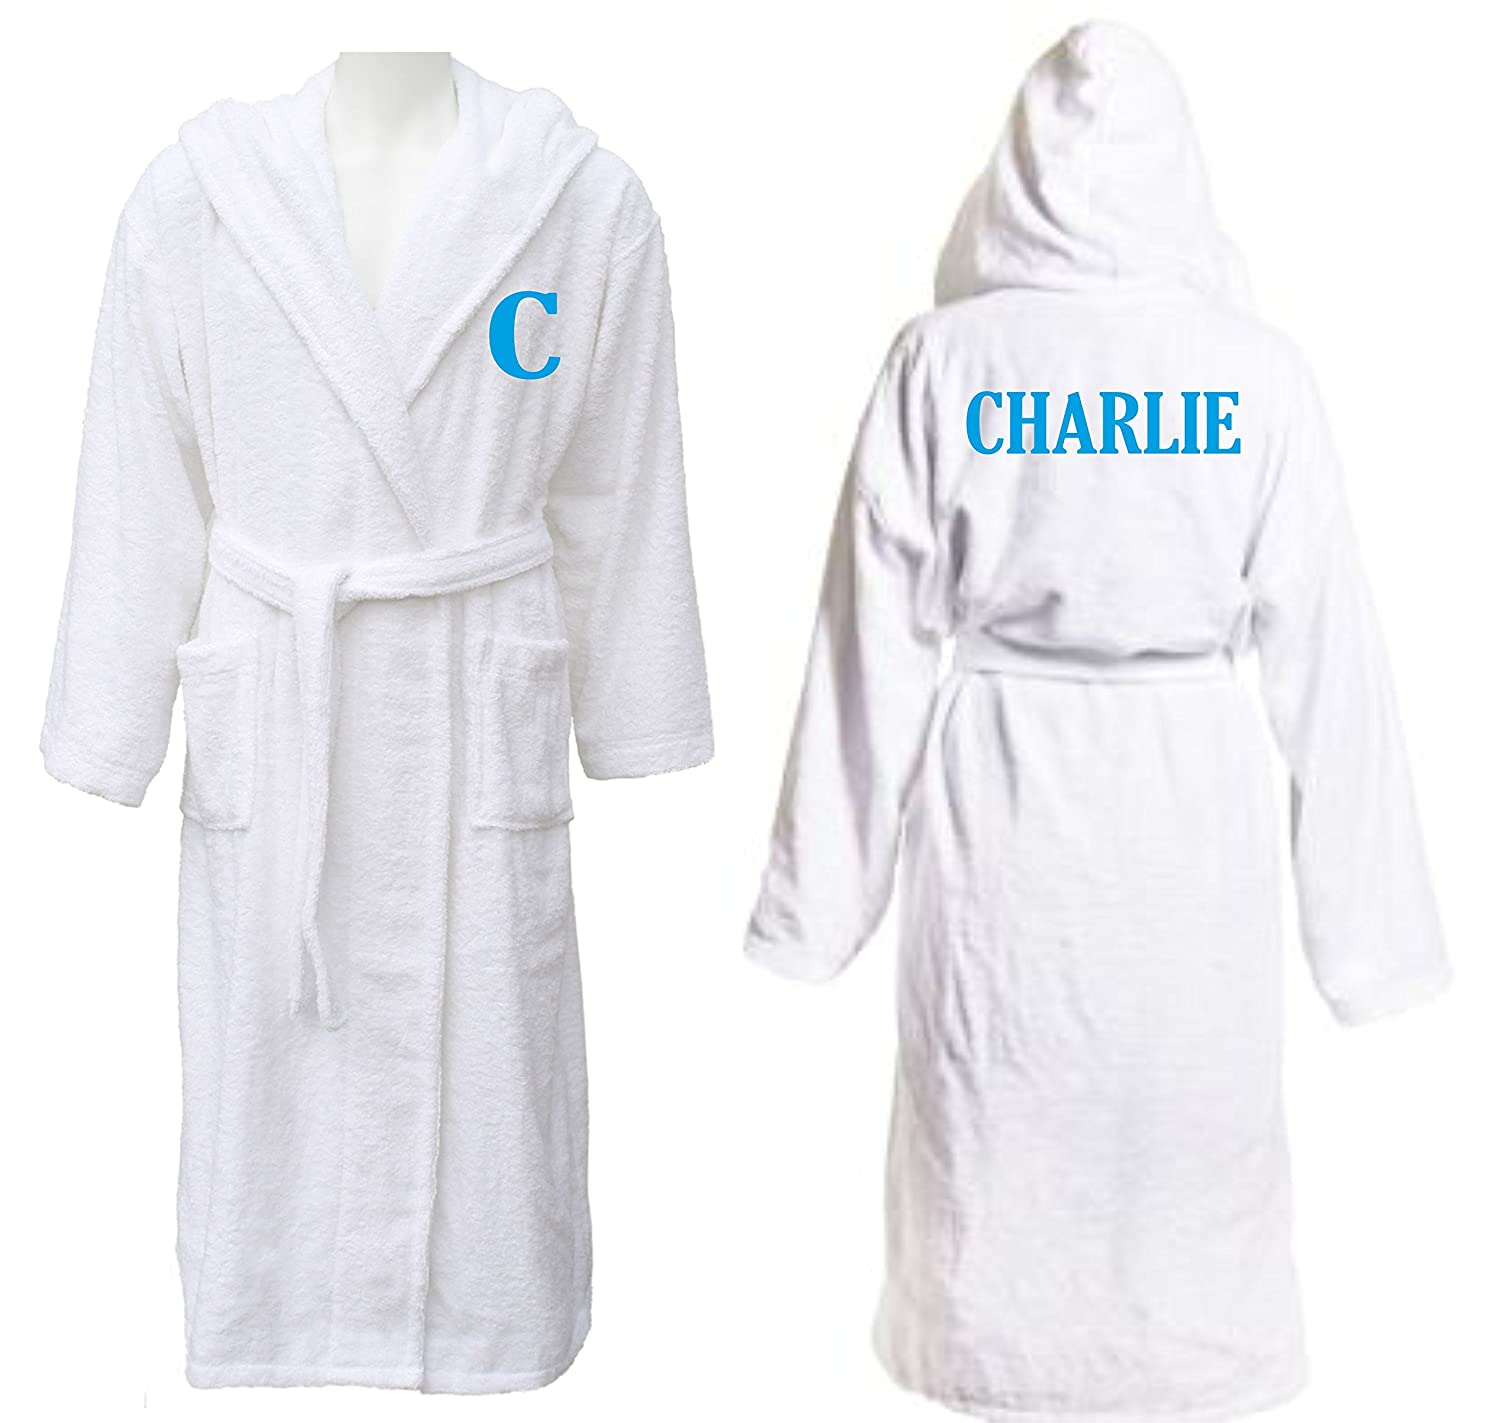 Big Babies Boutique Personalised Embroidered Boys White Hooded Bath Robe with Name and Initial